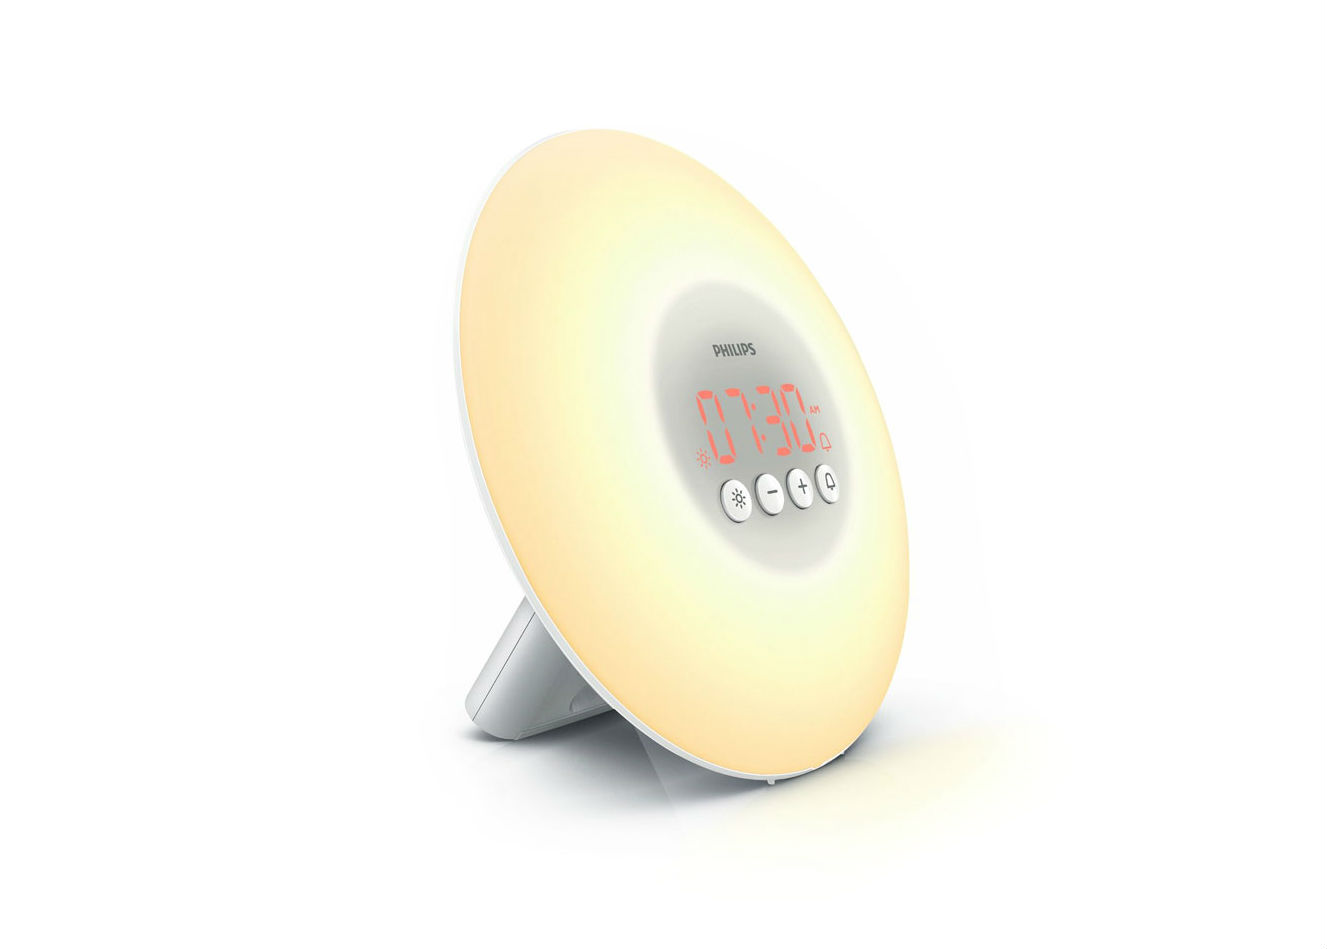 If you like the idea of waking up to the sunrise but need that wake-up call to come at 7am every morning throughout the entire year then this is the alarm ...  sc 1 st  Expert Reviews & Best alarm clock: The best alarm clocks guaranteed wake-up calls ... azcodes.com